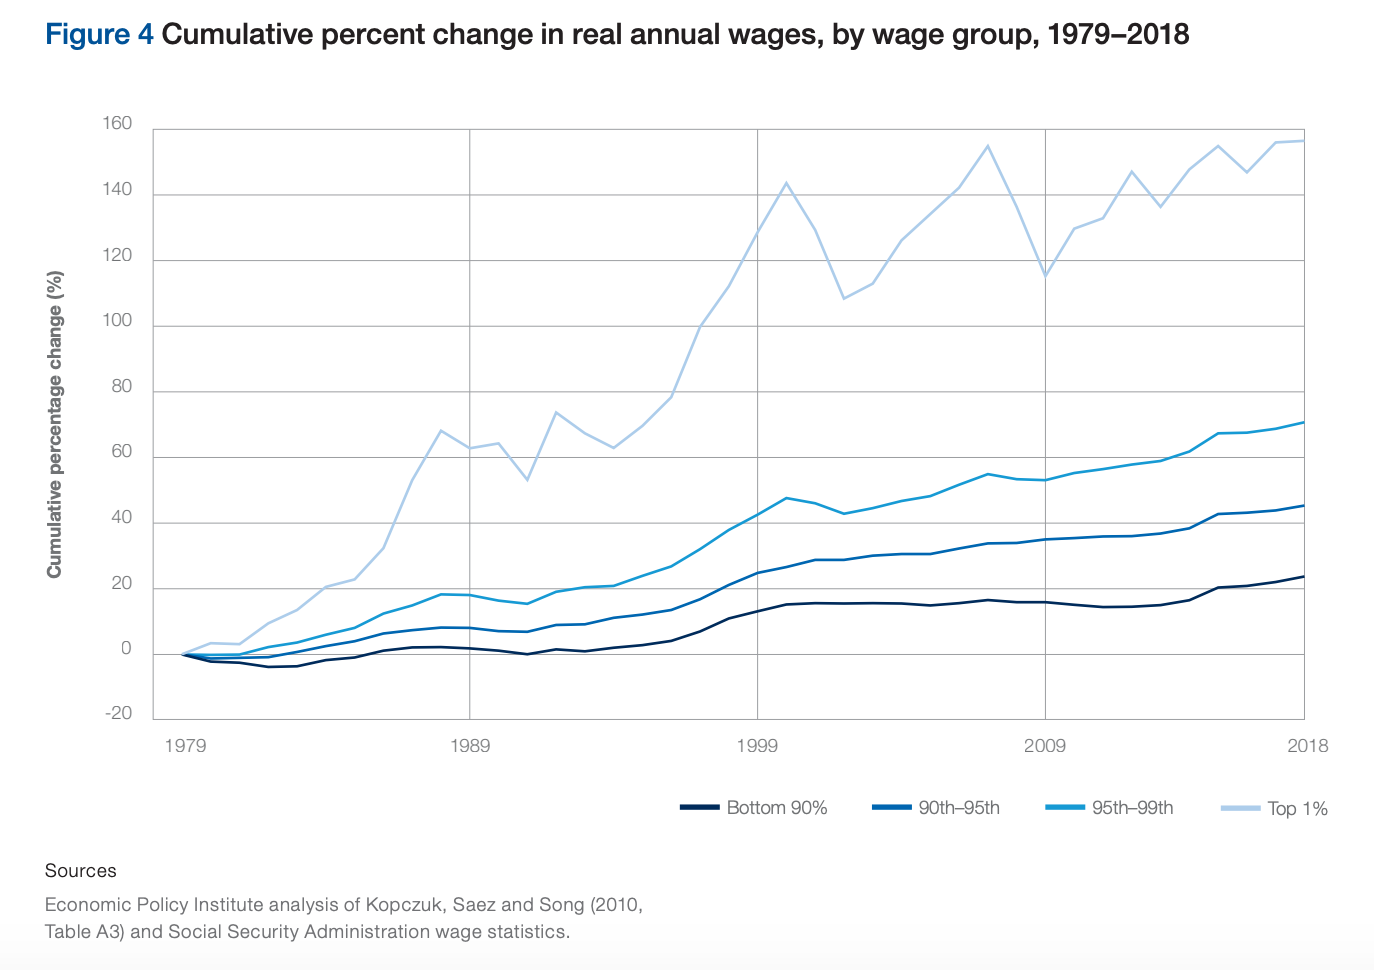 Cumulative percent change in real annual wages, by wage group, 1979-2018